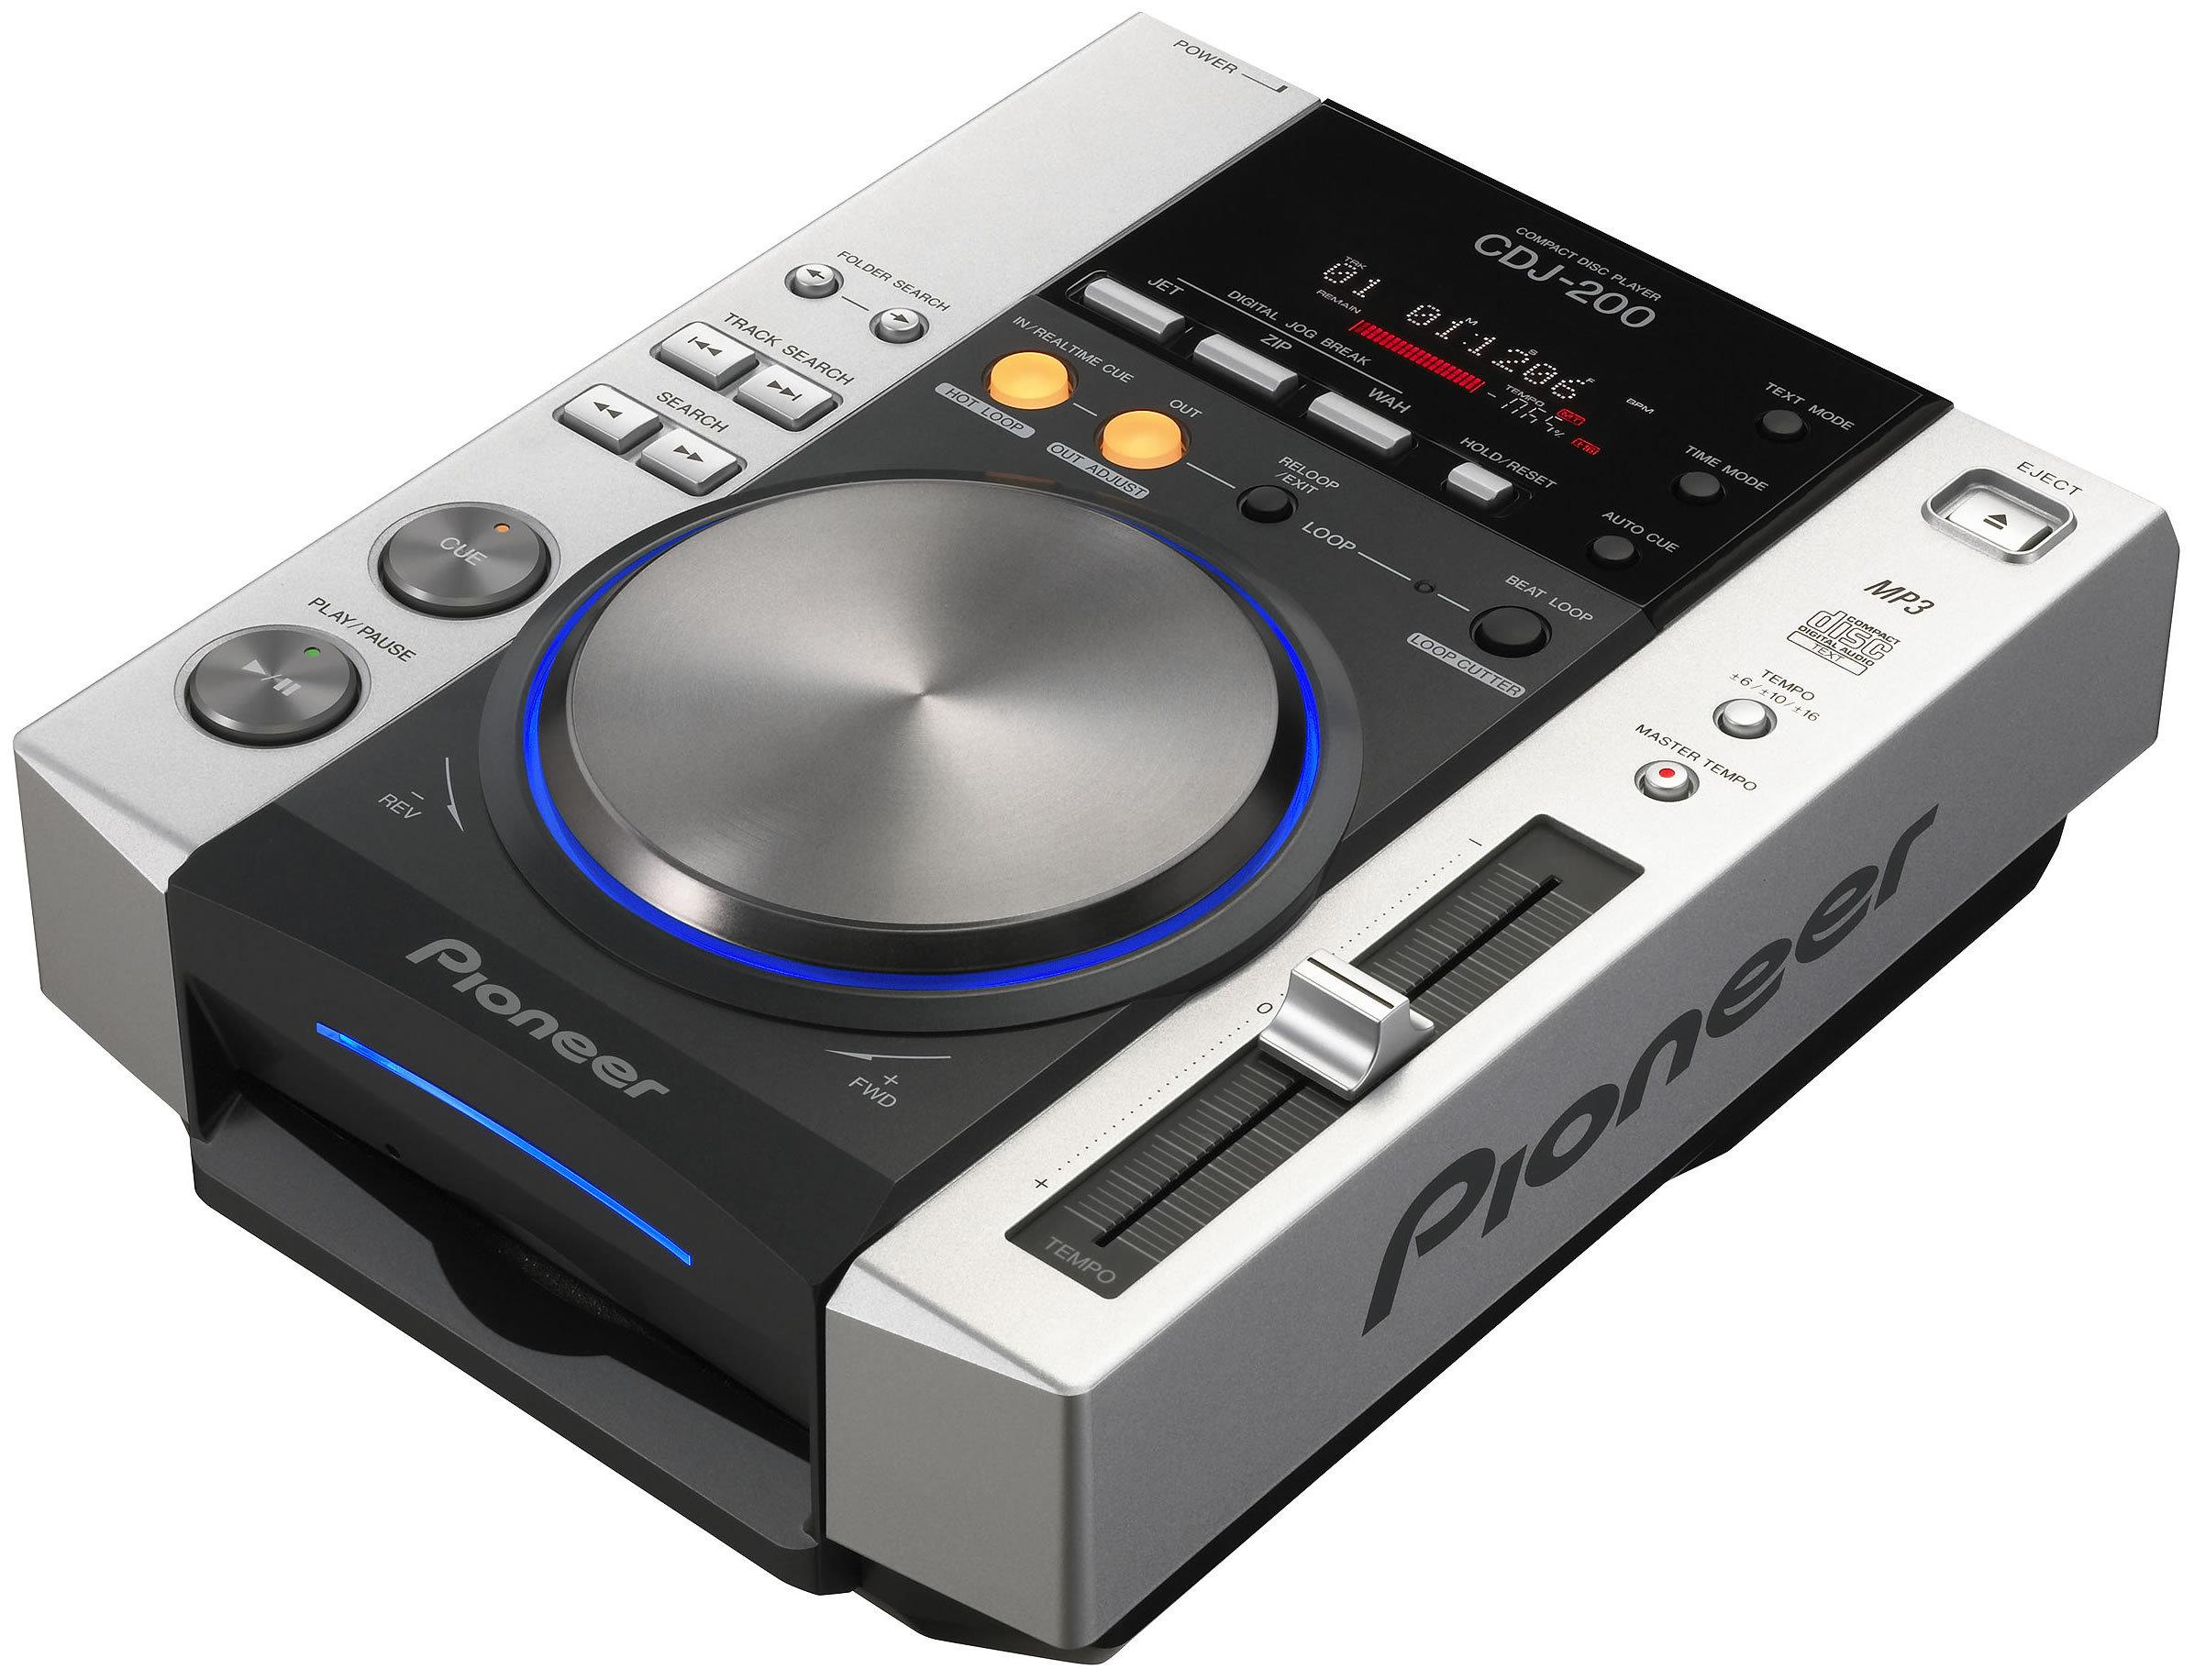 The Pioneer CDJ-200 CD deck